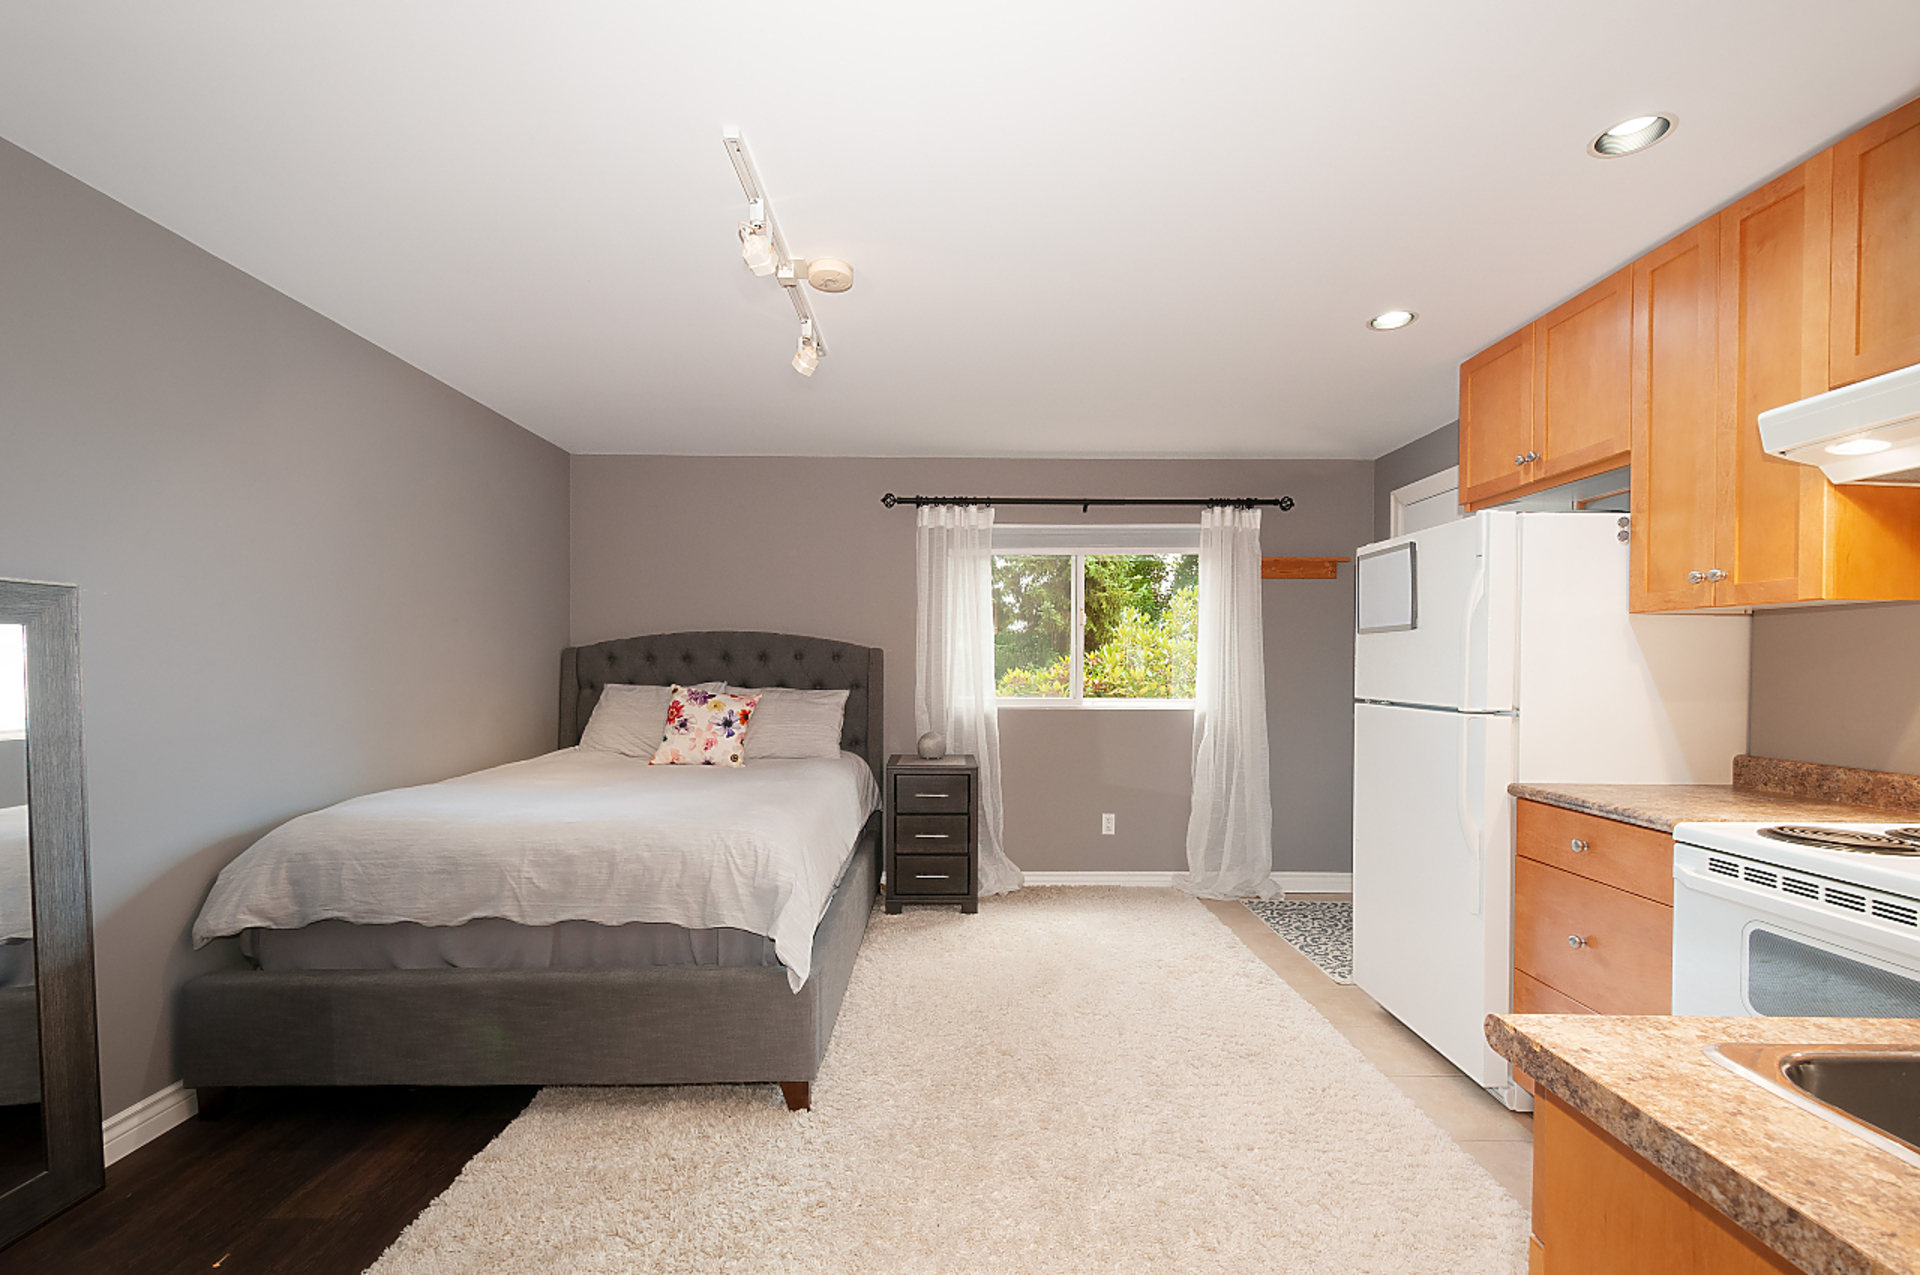 030 at 20 Chestnut Way, Heritage Woods PM, Port Moody